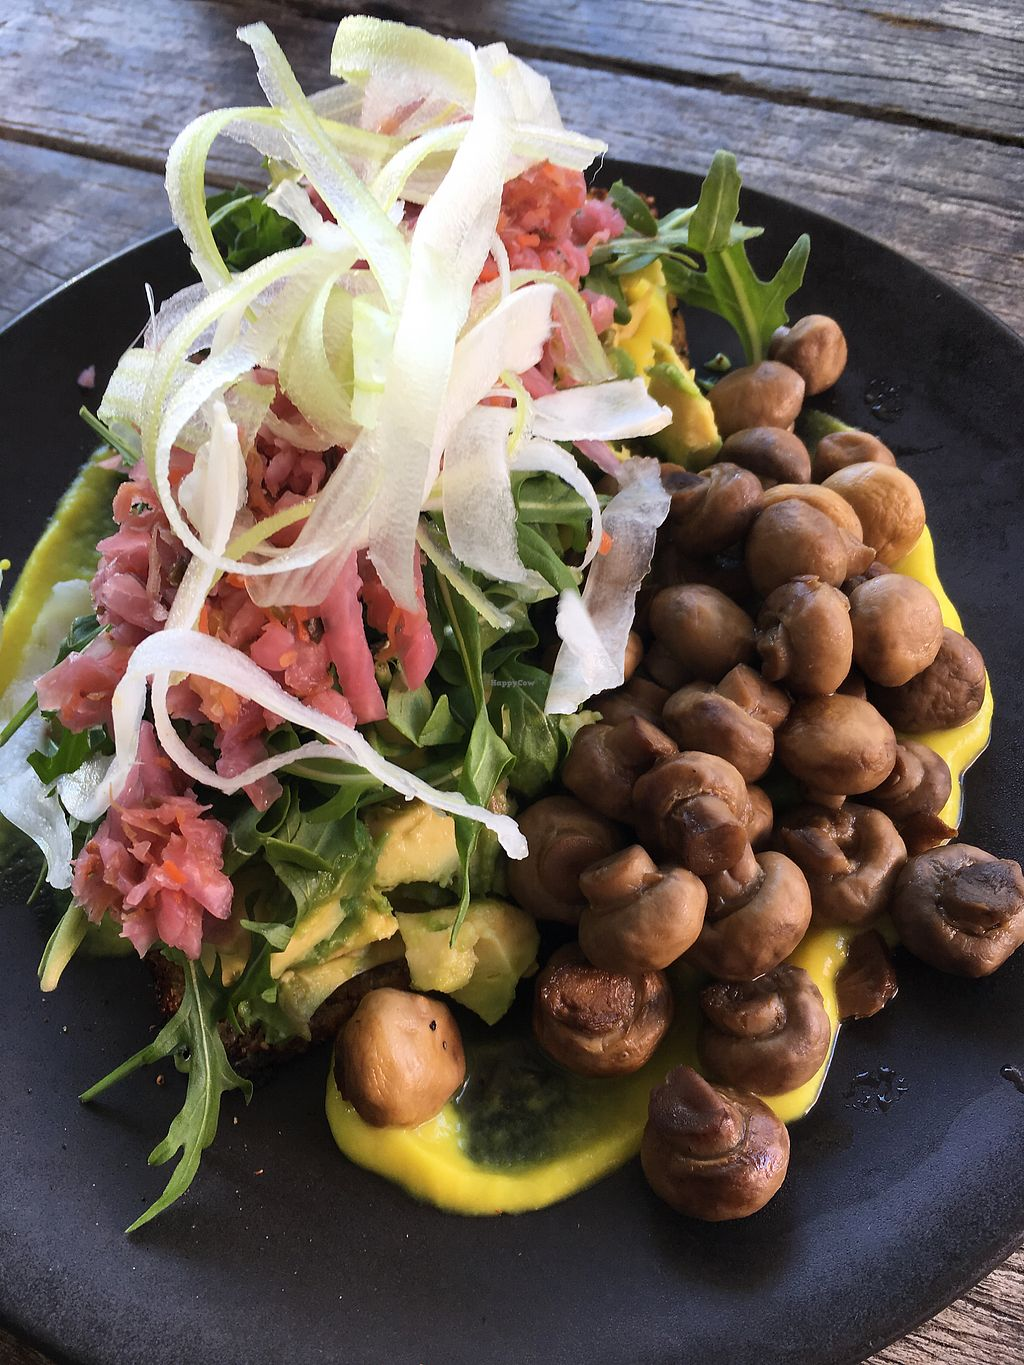 """Photo of Sprout Wholefood Cafe and Grocer  by <a href=""""/members/profile/Jennydegio"""">Jennydegio</a> <br/>Anti Inflam Stack with a side of mushrooms <br/> August 22, 2017  - <a href='/contact/abuse/image/66929/295425'>Report</a>"""